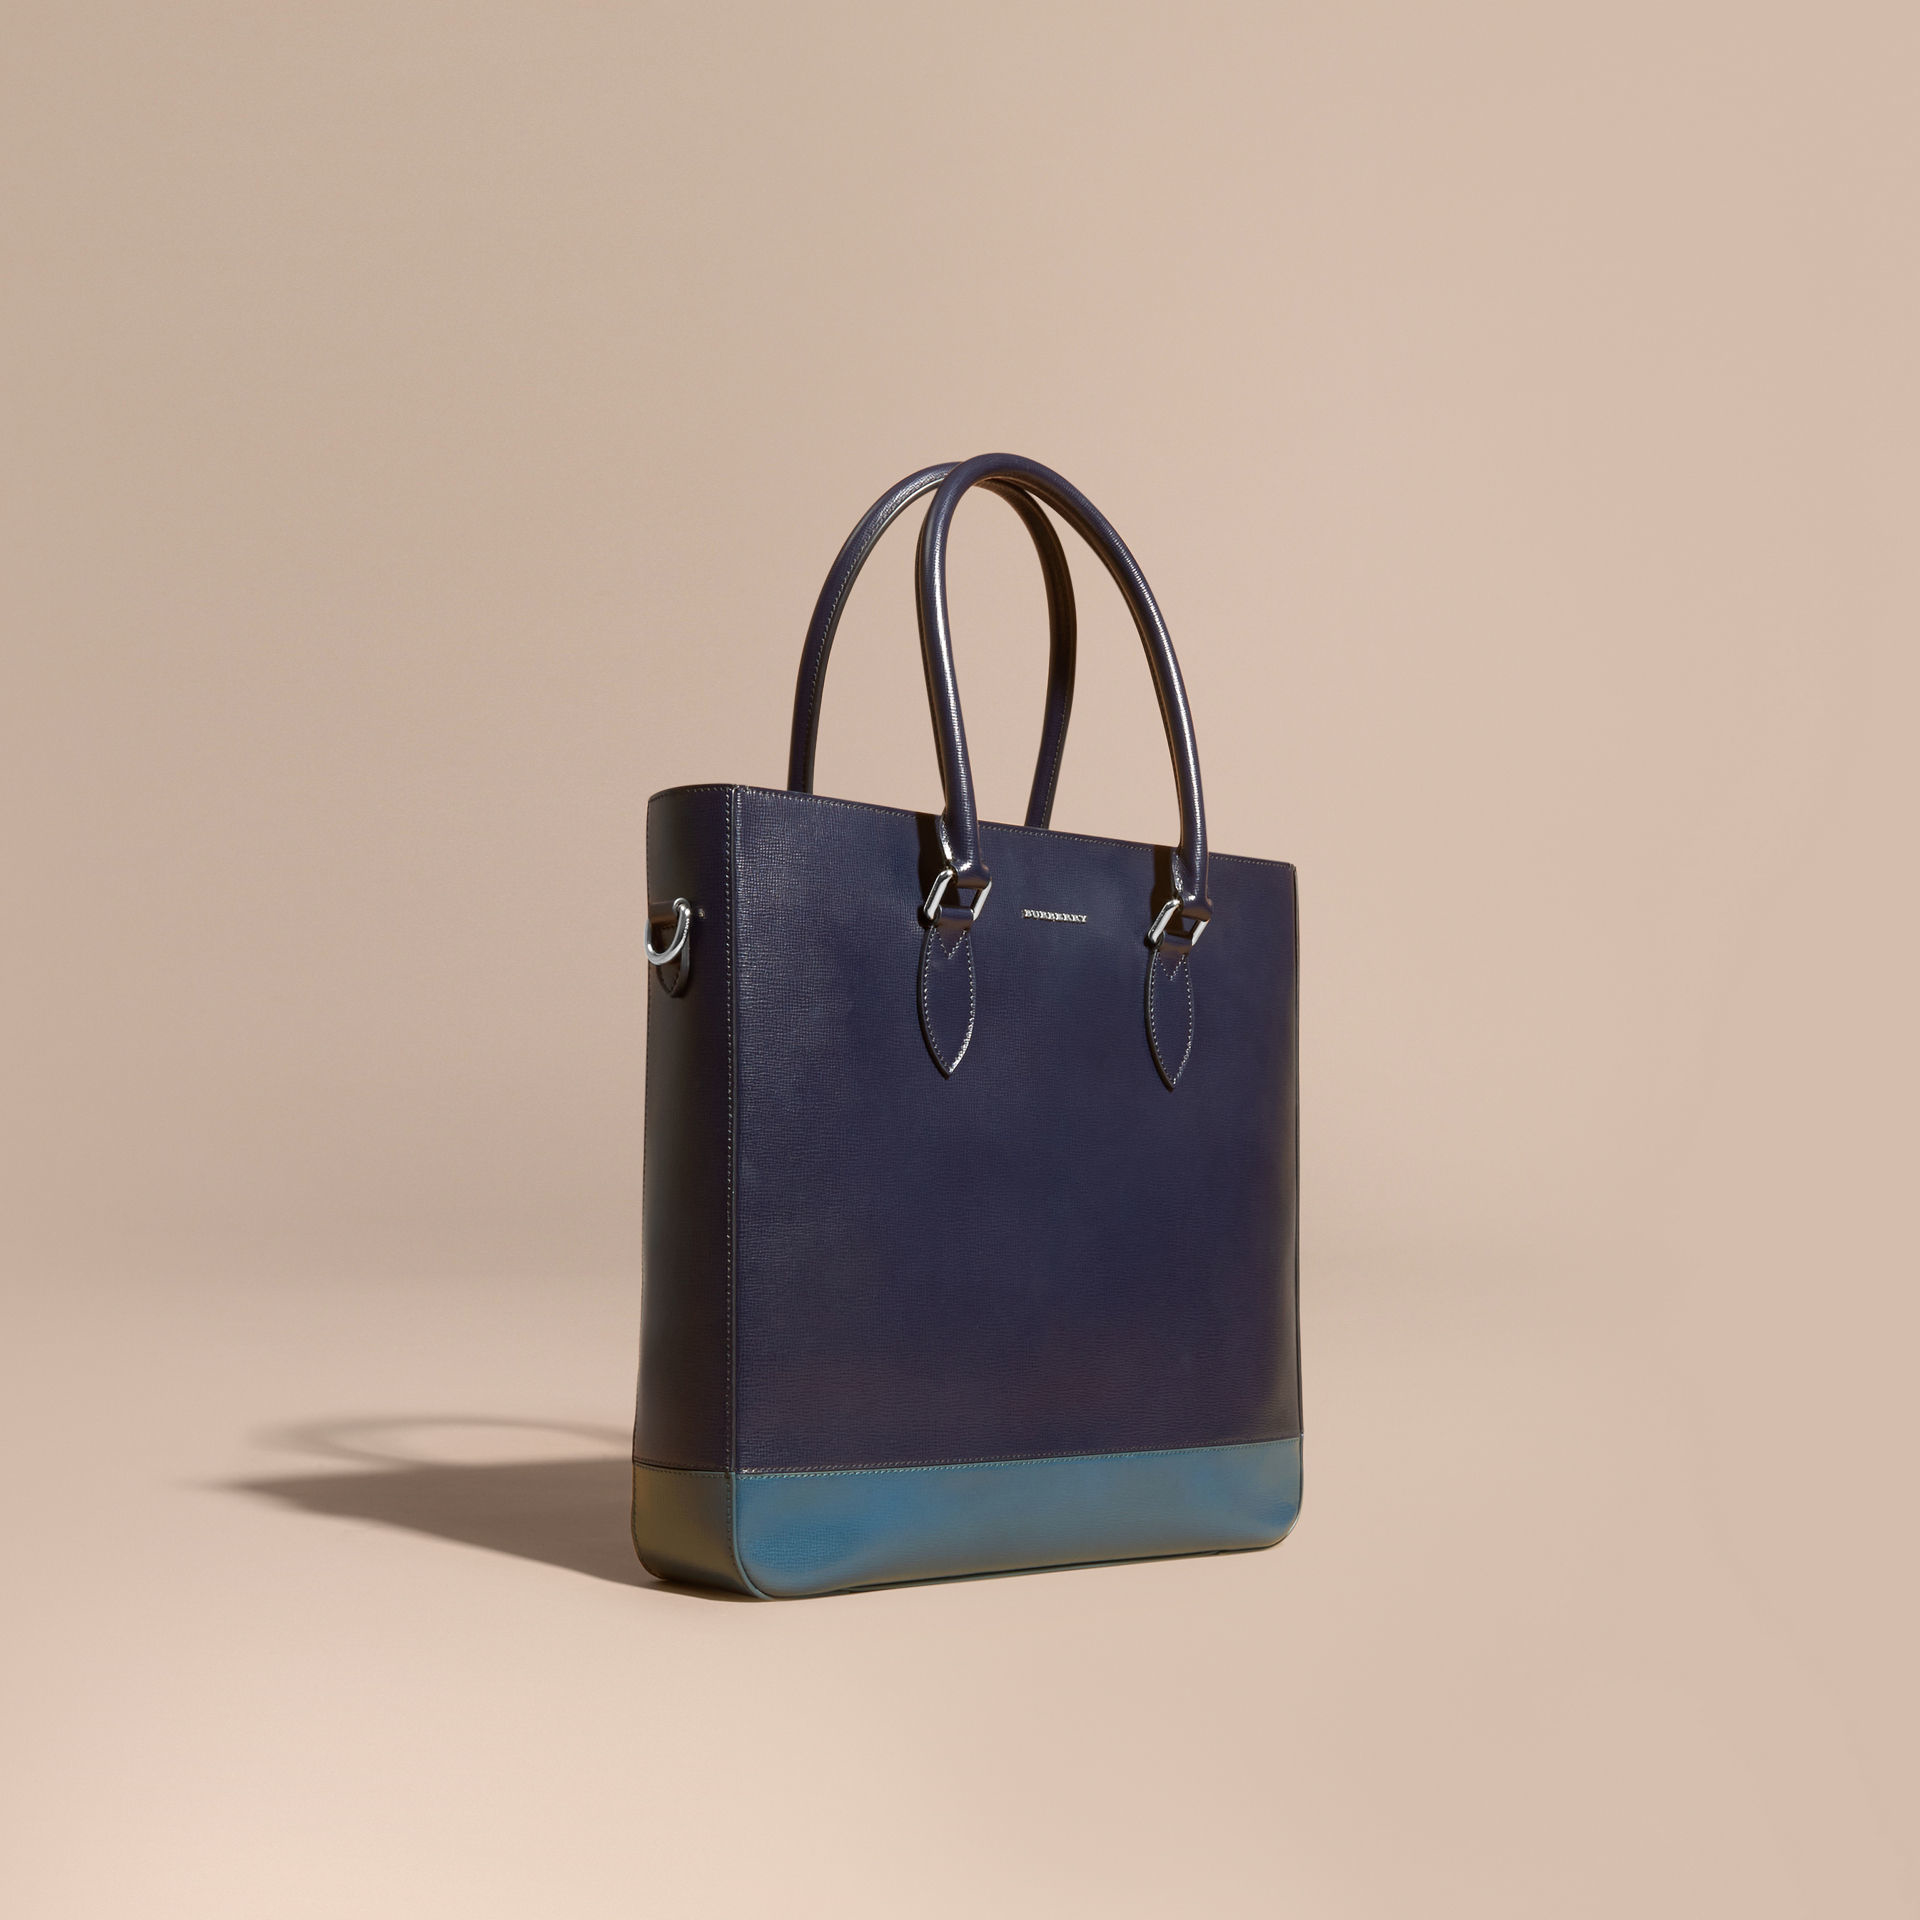 9966a2a318 Burberry Panelled London Leather Tote Bag Dark Navy/mineral Blue in ...